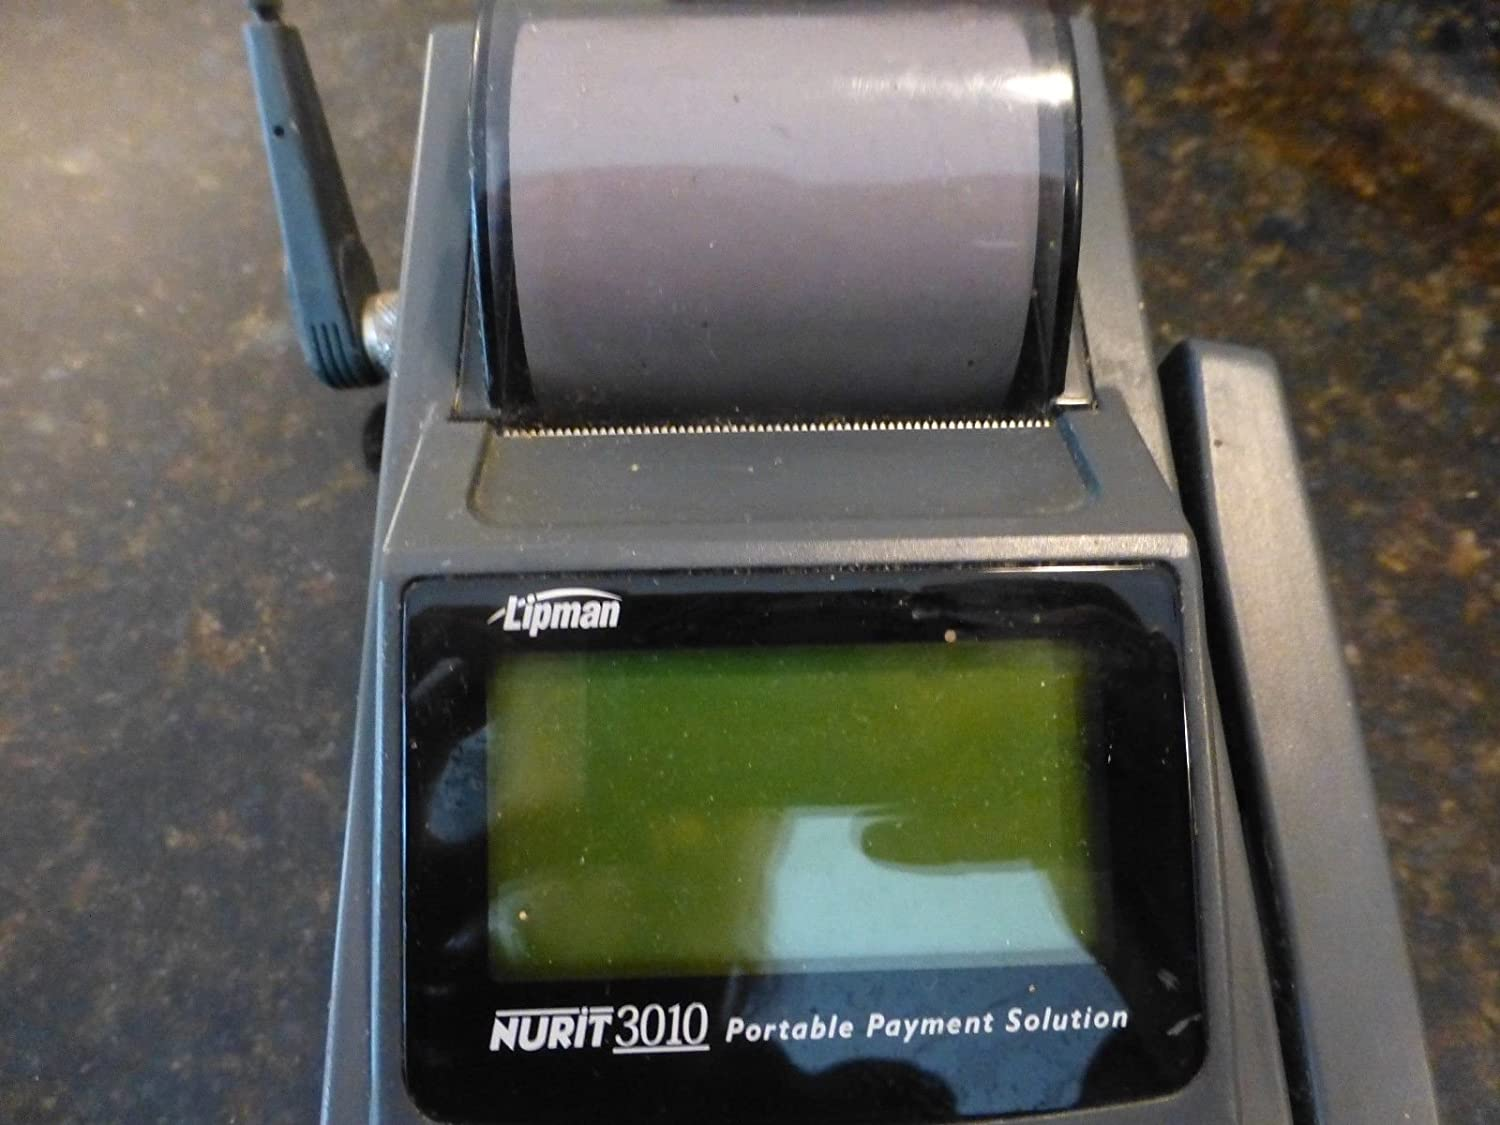 Amazon.com: Lipman Nurit 3010 portable payment R802D-2-0 credit card  terminal machine only: Everything Else